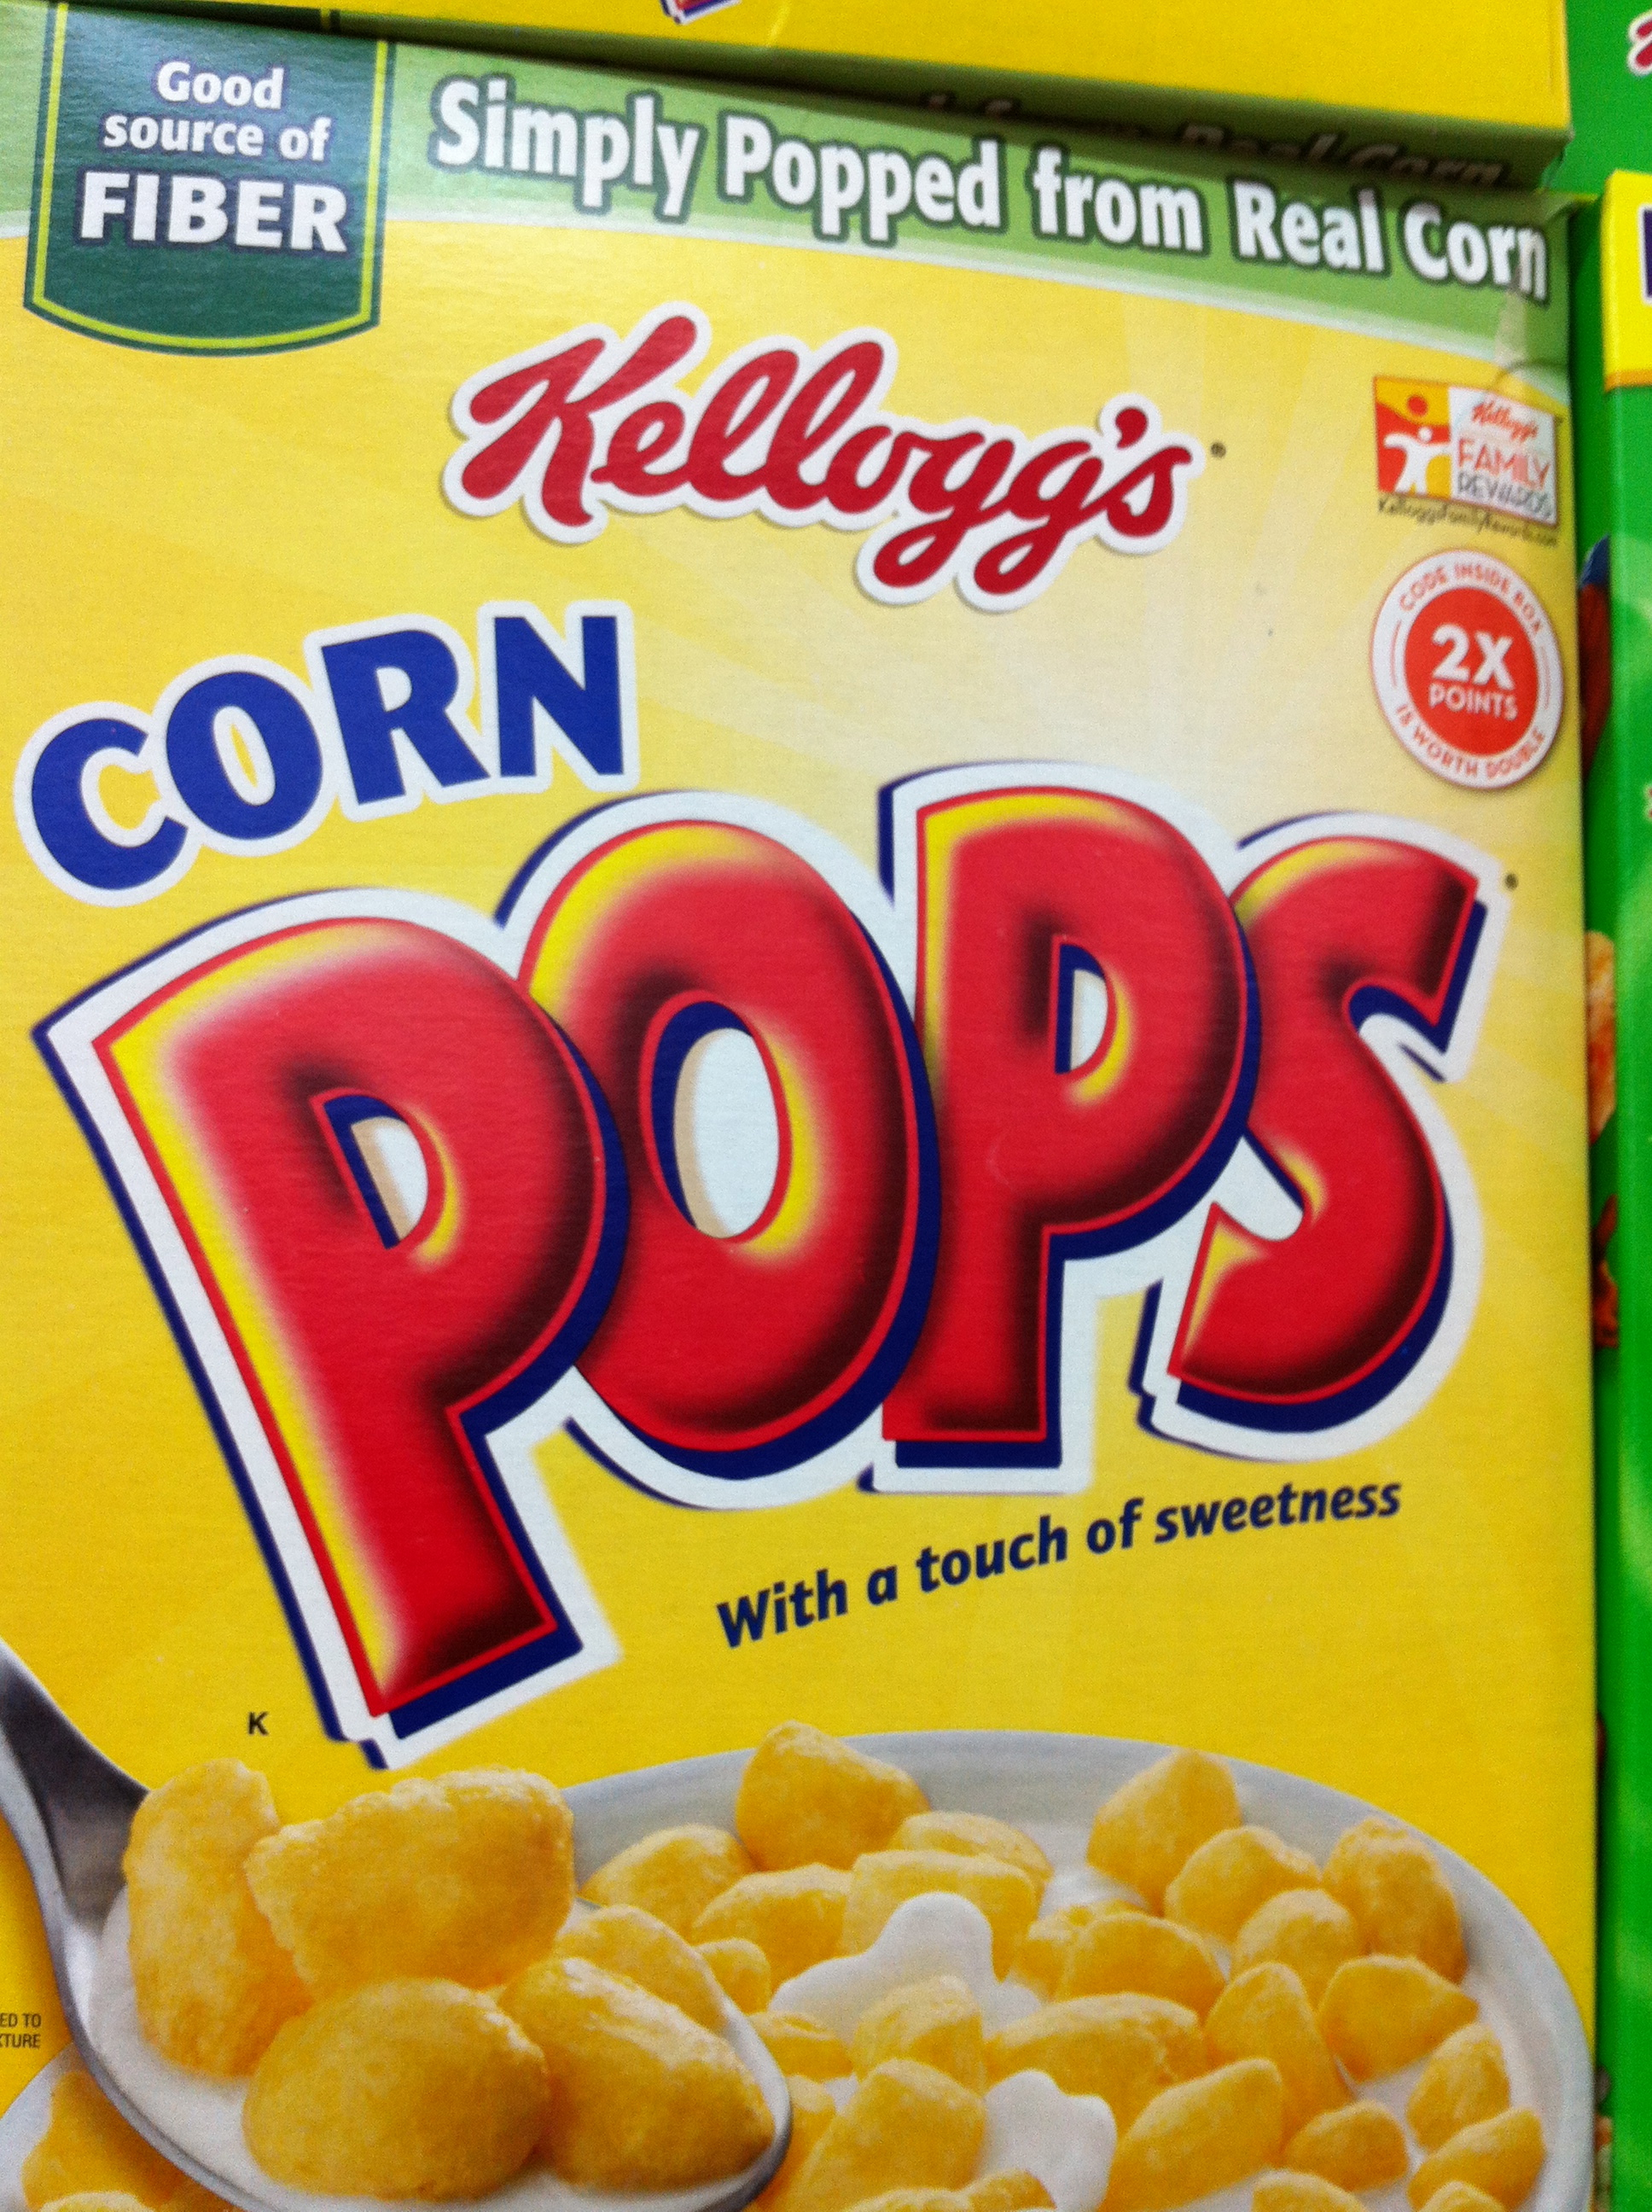 Fortified cereals with nutrient claims